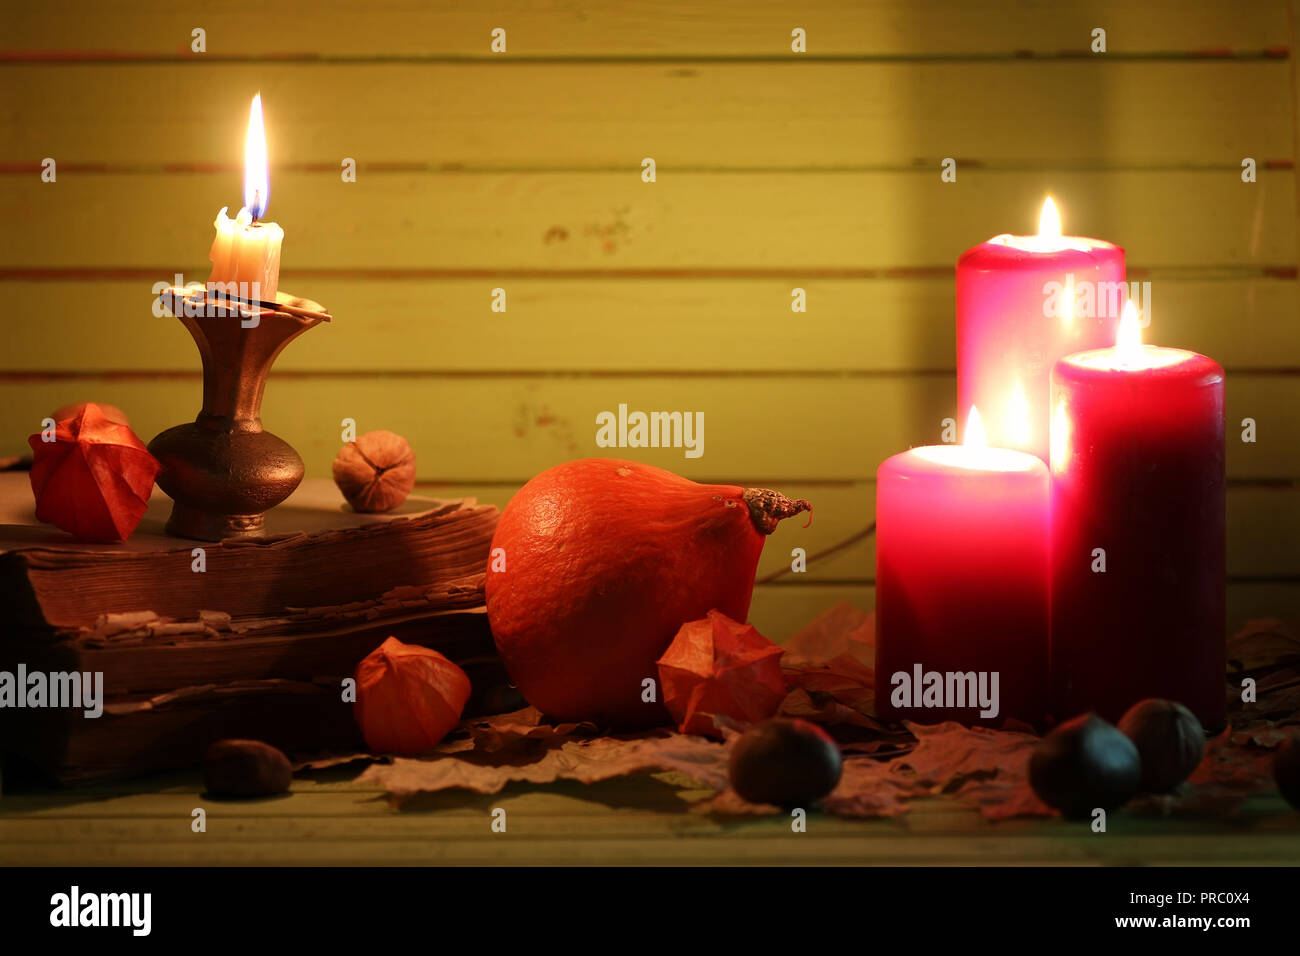 preparation of various decorations and attributes for the